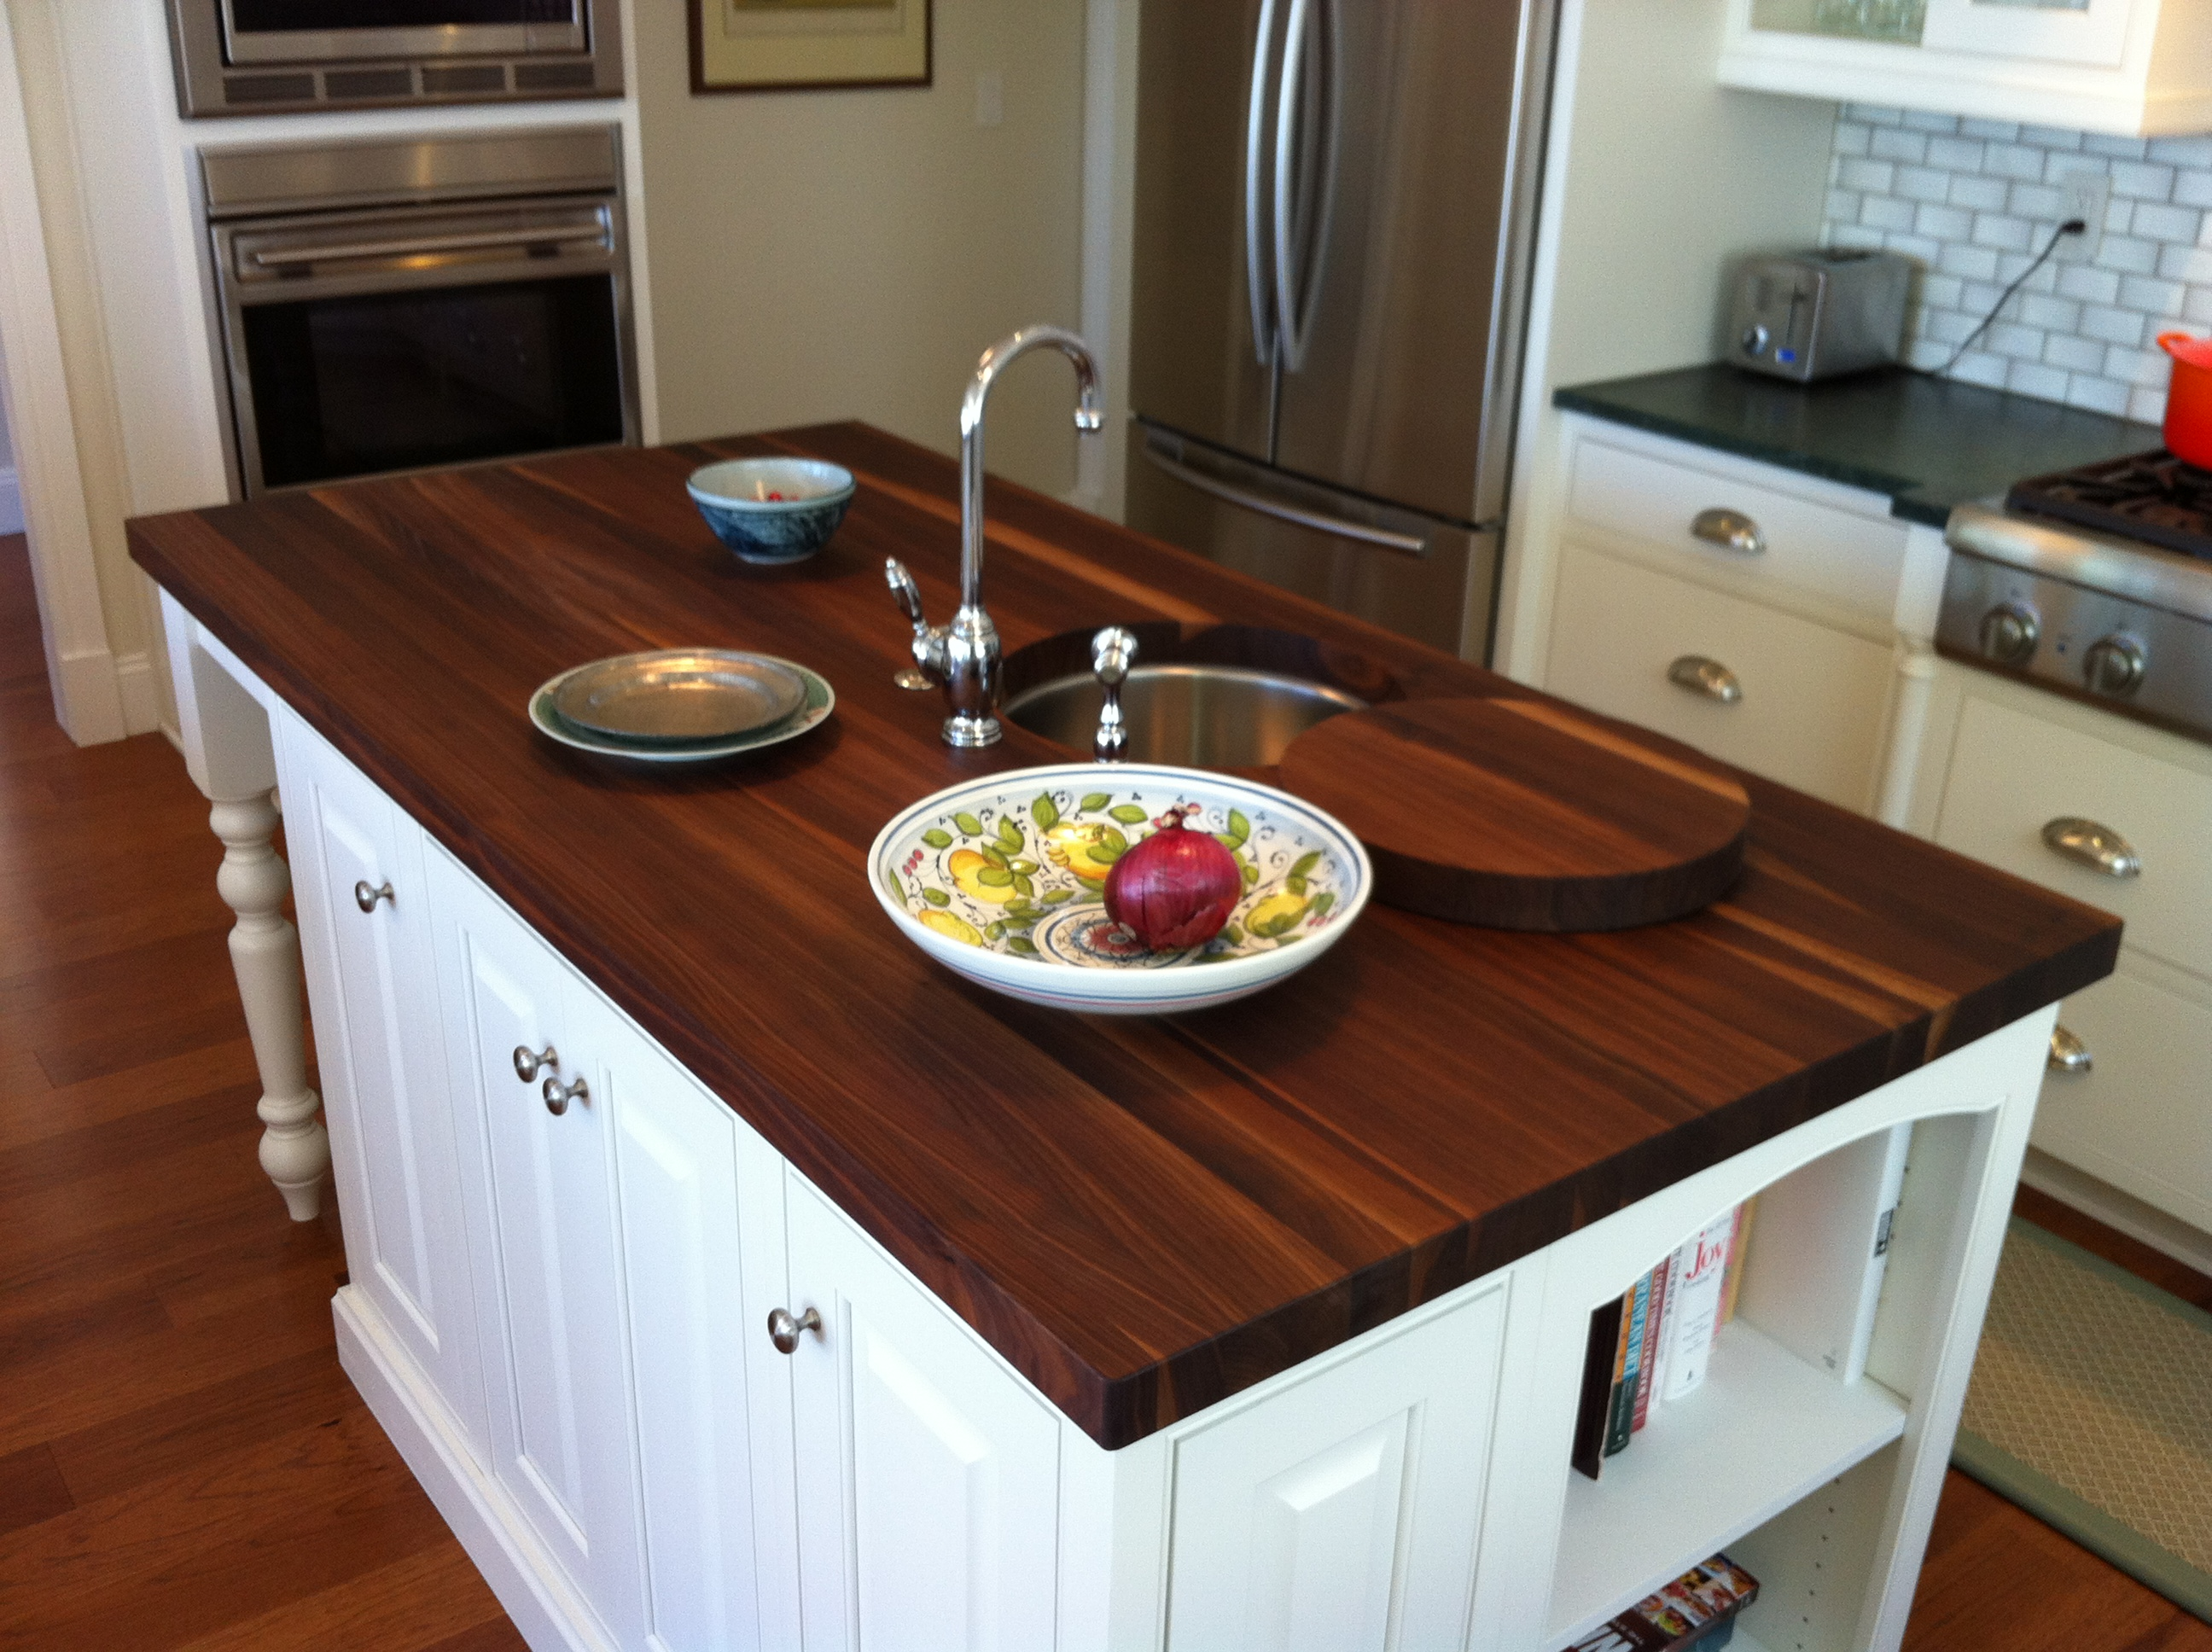 flooring and countertops kitchen countertop prices best images about flooring and countertops on Pinterest Islands Alicante and Soapstone